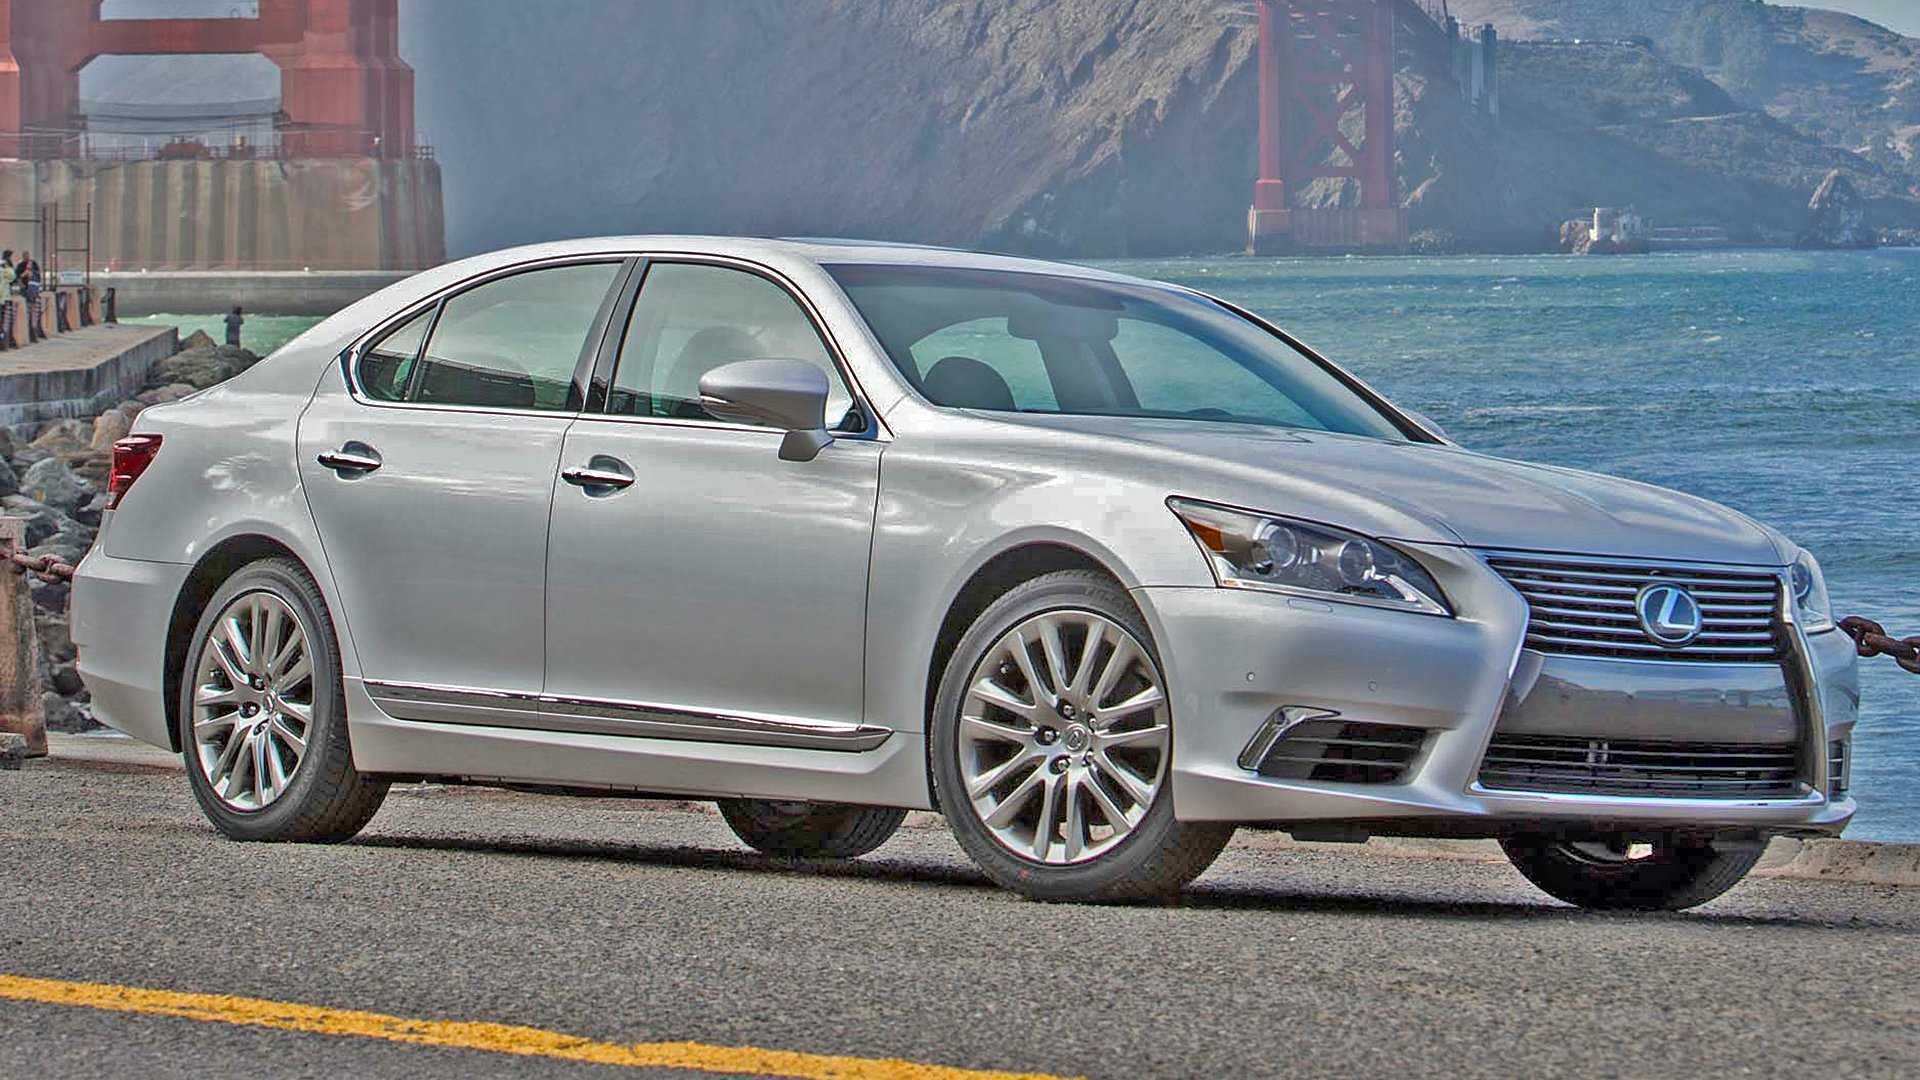 New 2019 Lexus LS 460 Price